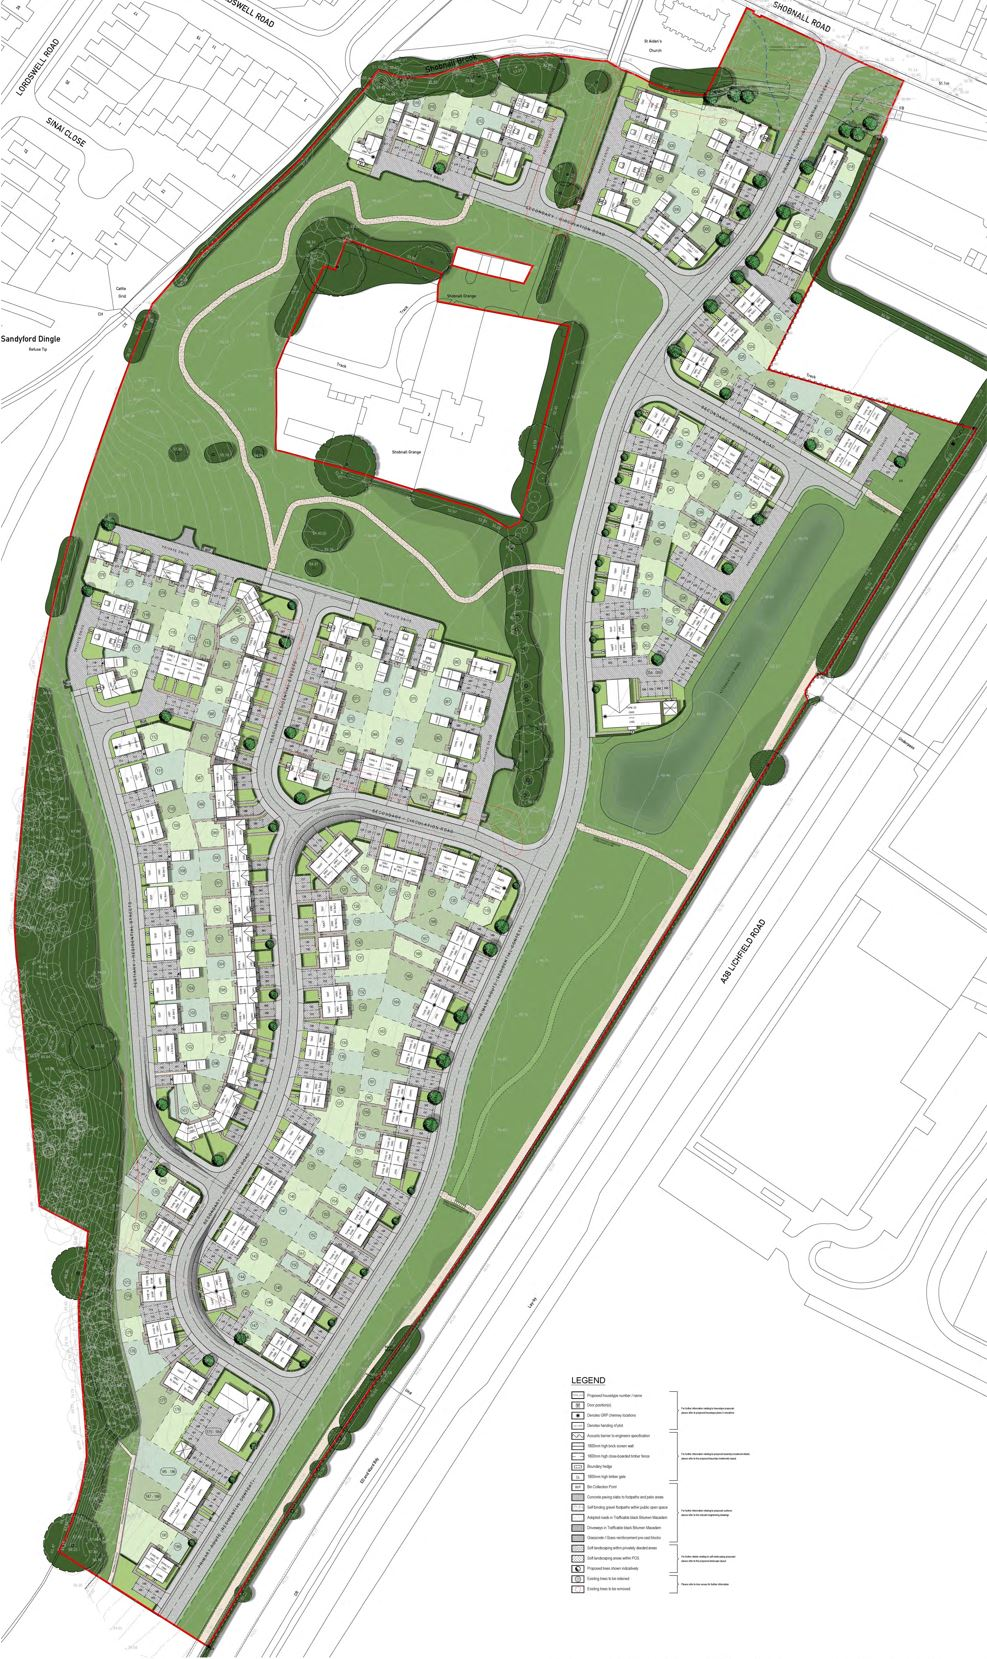 LOVELL PARTNERSHIPS SET TO DELIVER TWO SIGNIFICANT EAST MIDLANDS SCHEMES